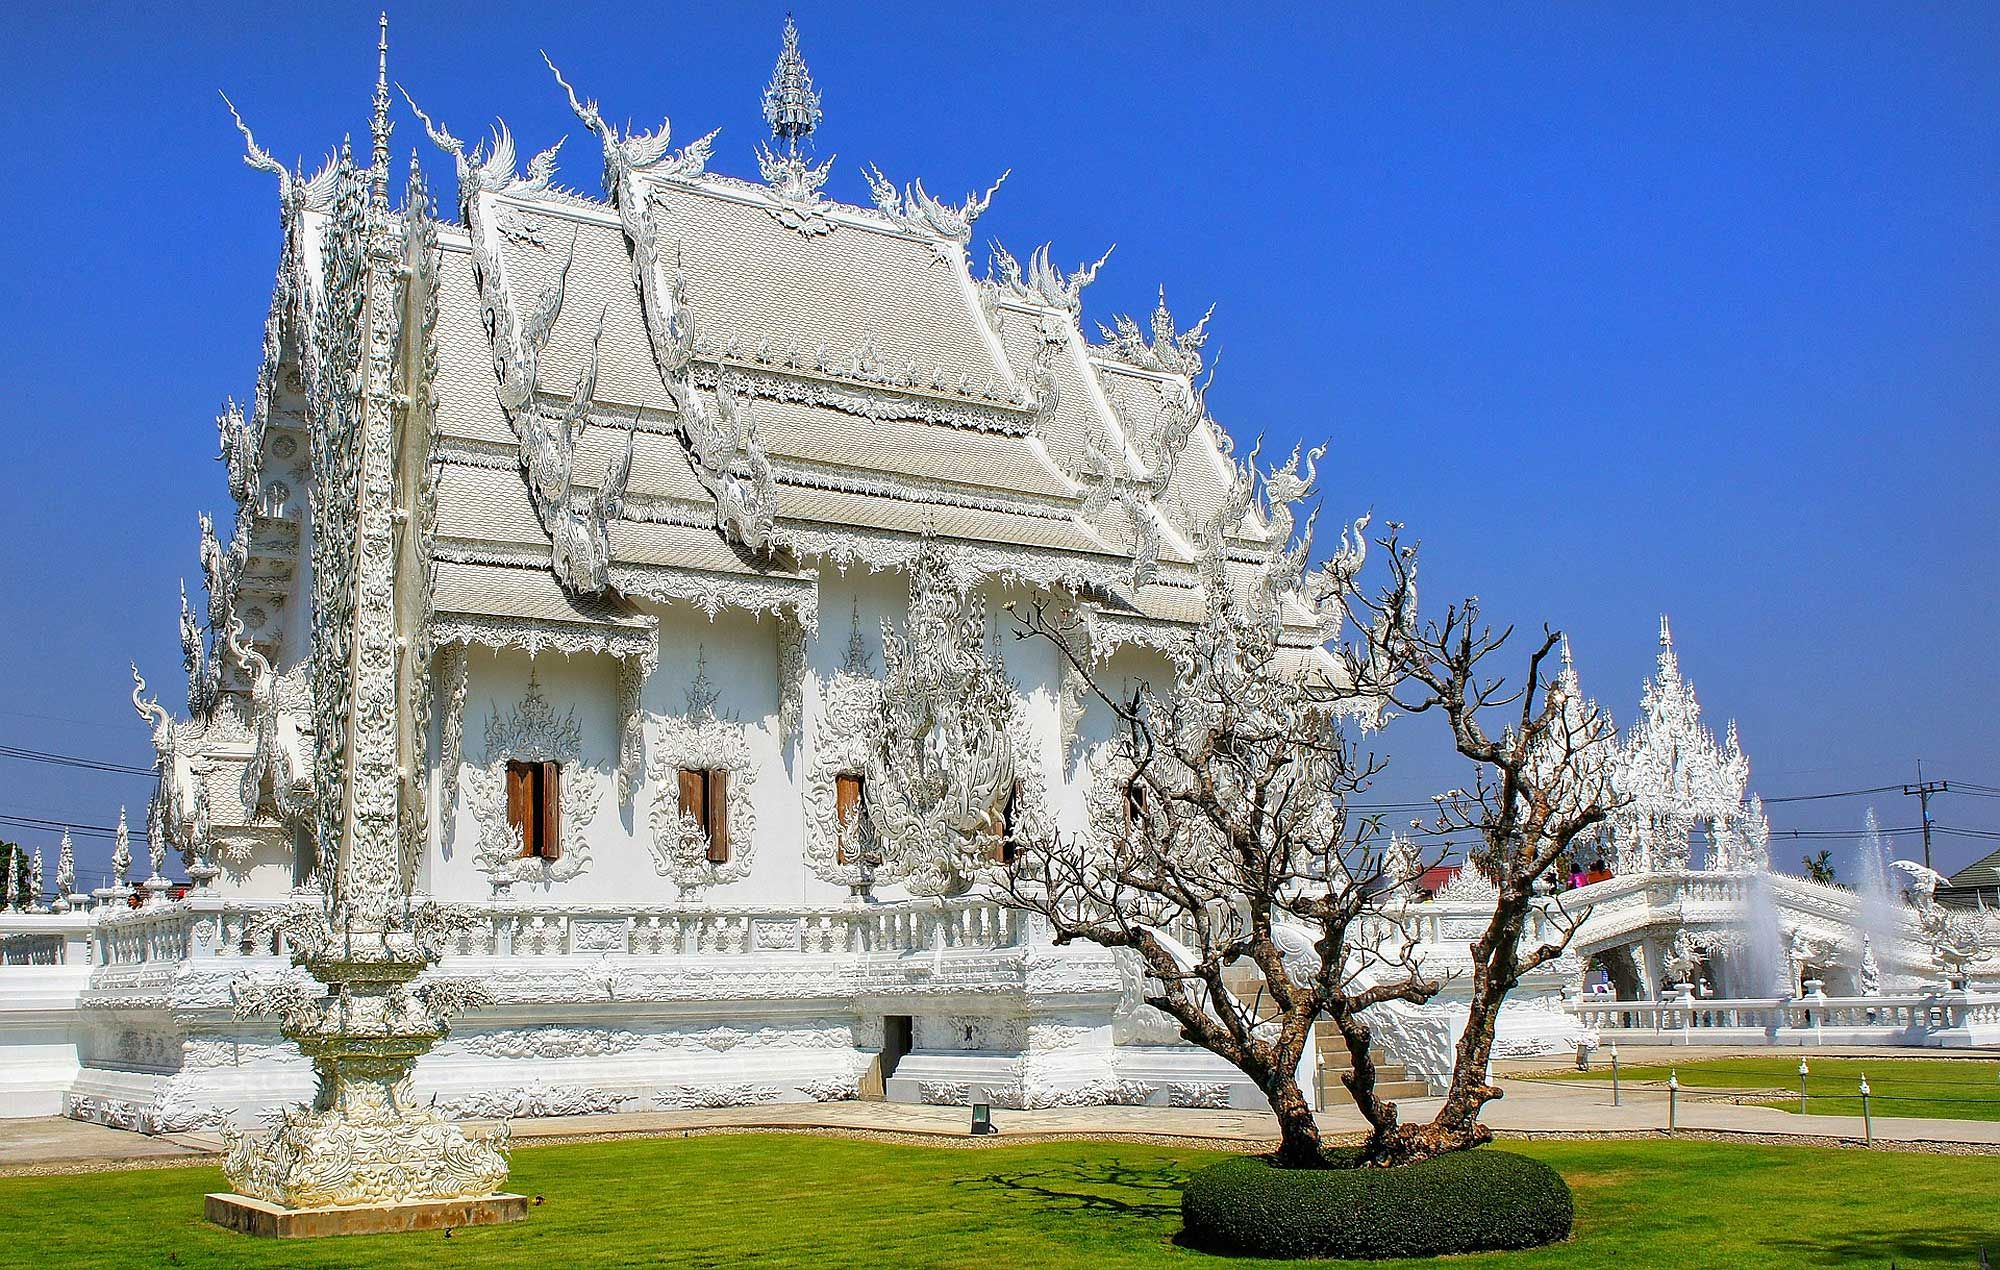 Postcards From The Land Of Smiles: Discovering Art, Spirituality & Beauty In Chiang Rai